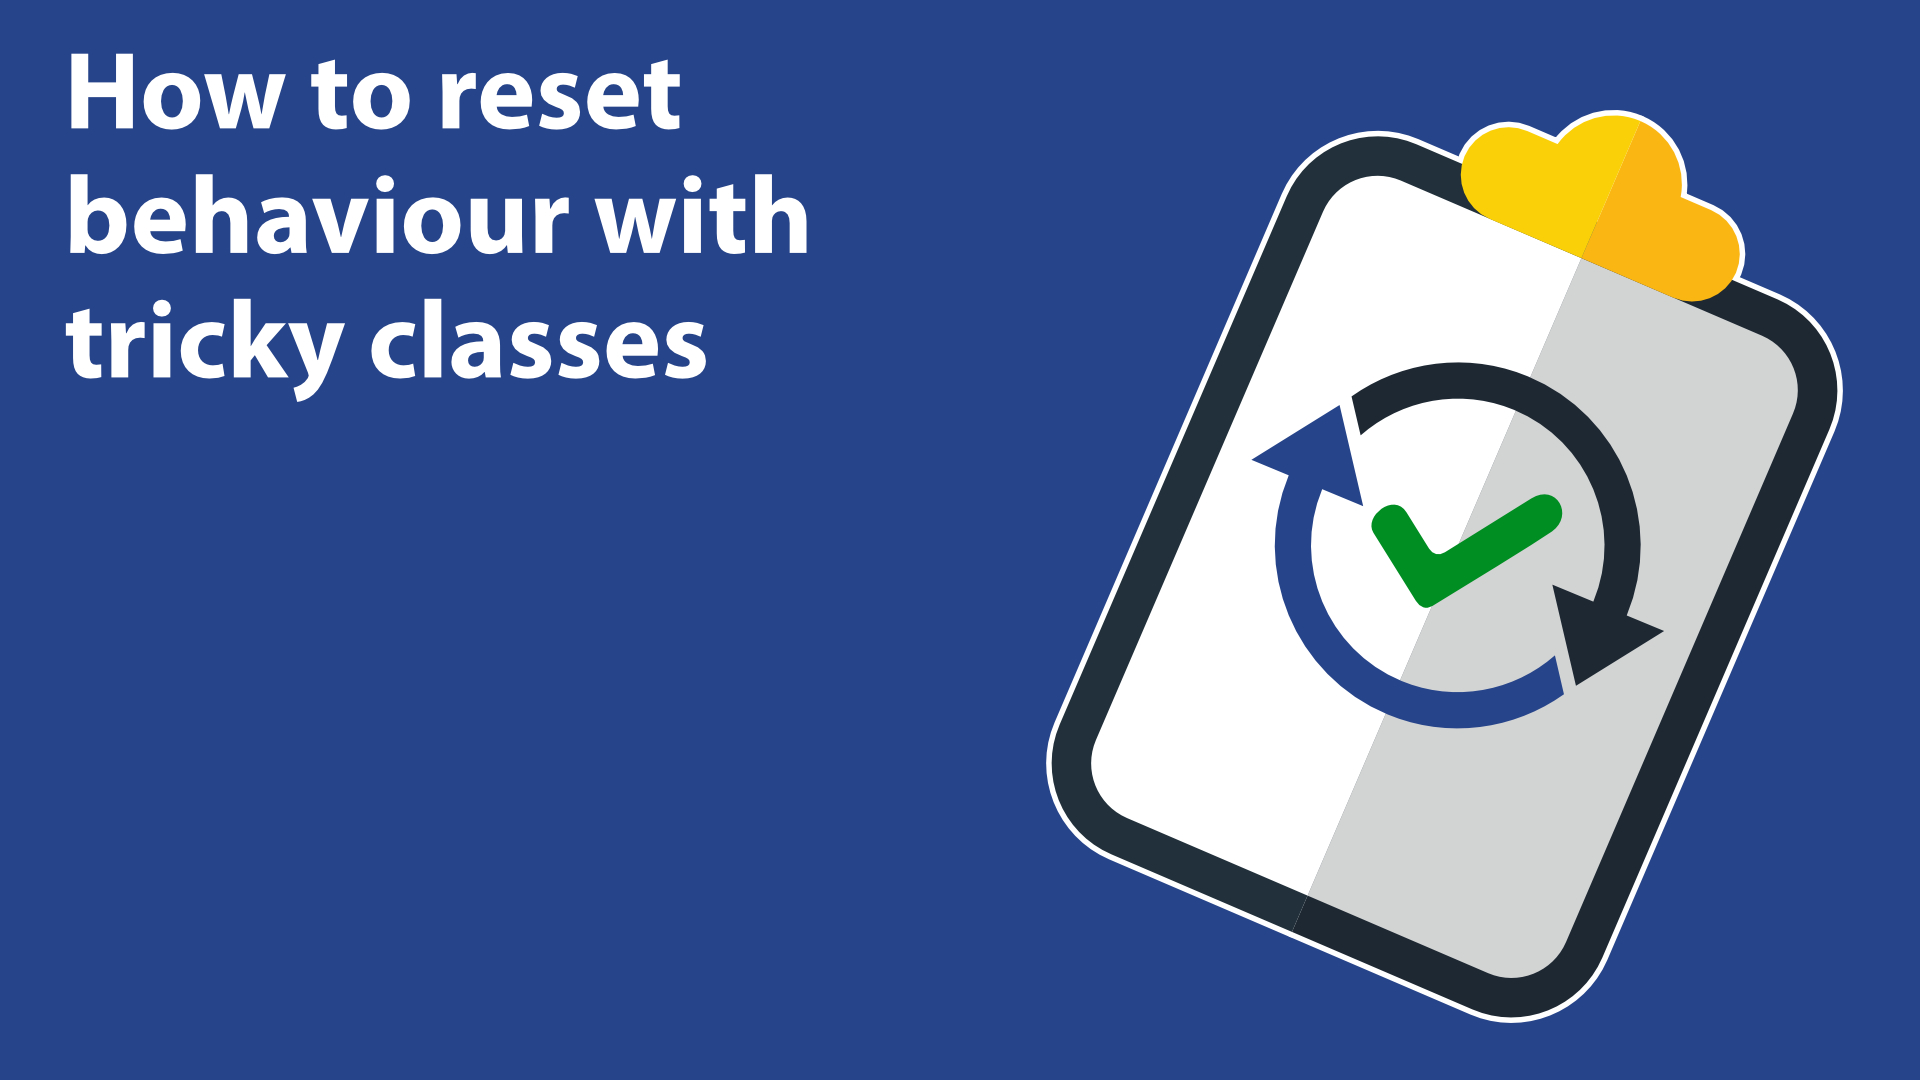 How to reset behaviour with tricky classes image